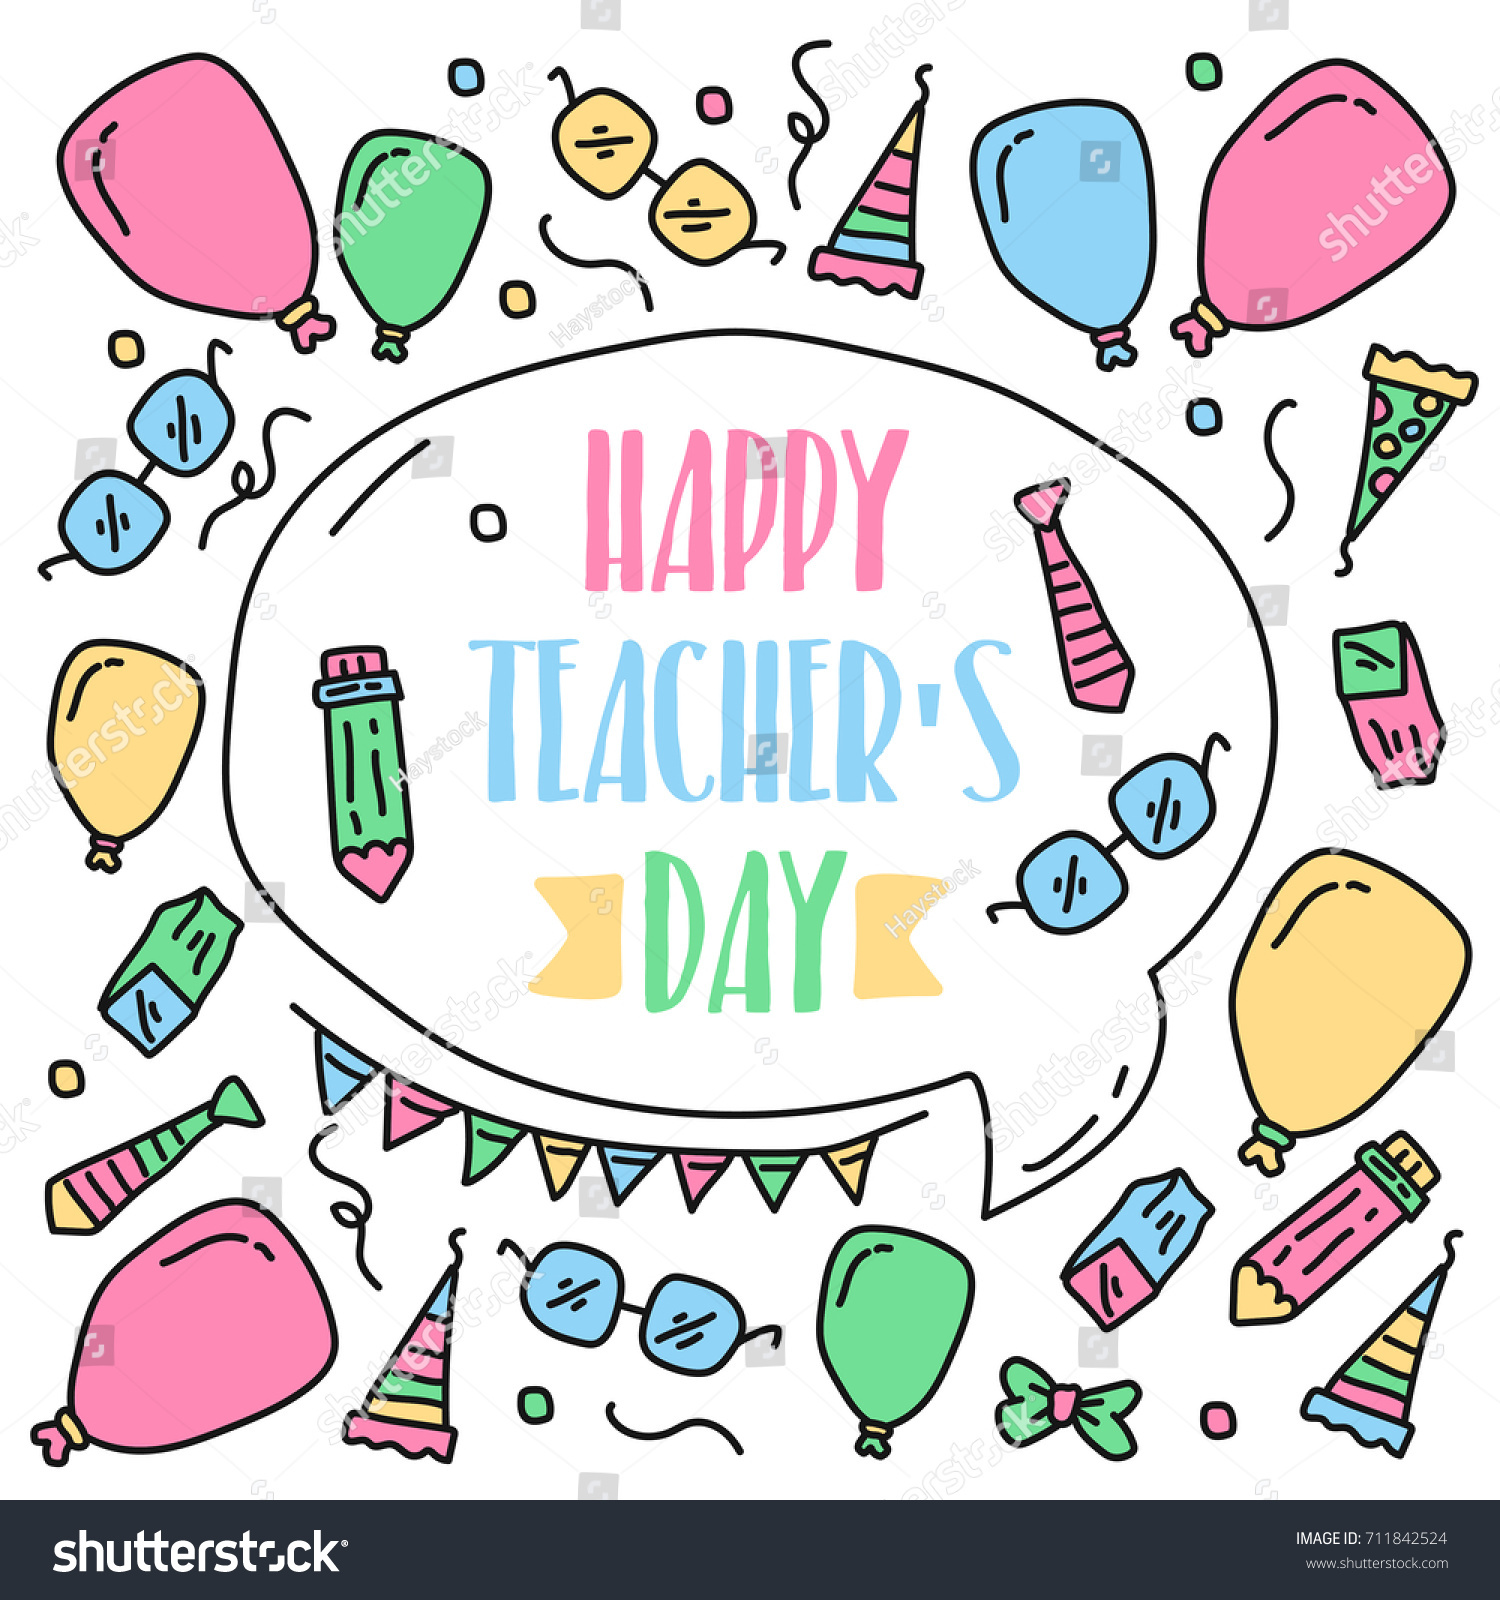 Teachers day greeting card illustration vector stock vector teachers day greeting card illustration vector art great design element for congratulation cards kristyandbryce Image collections